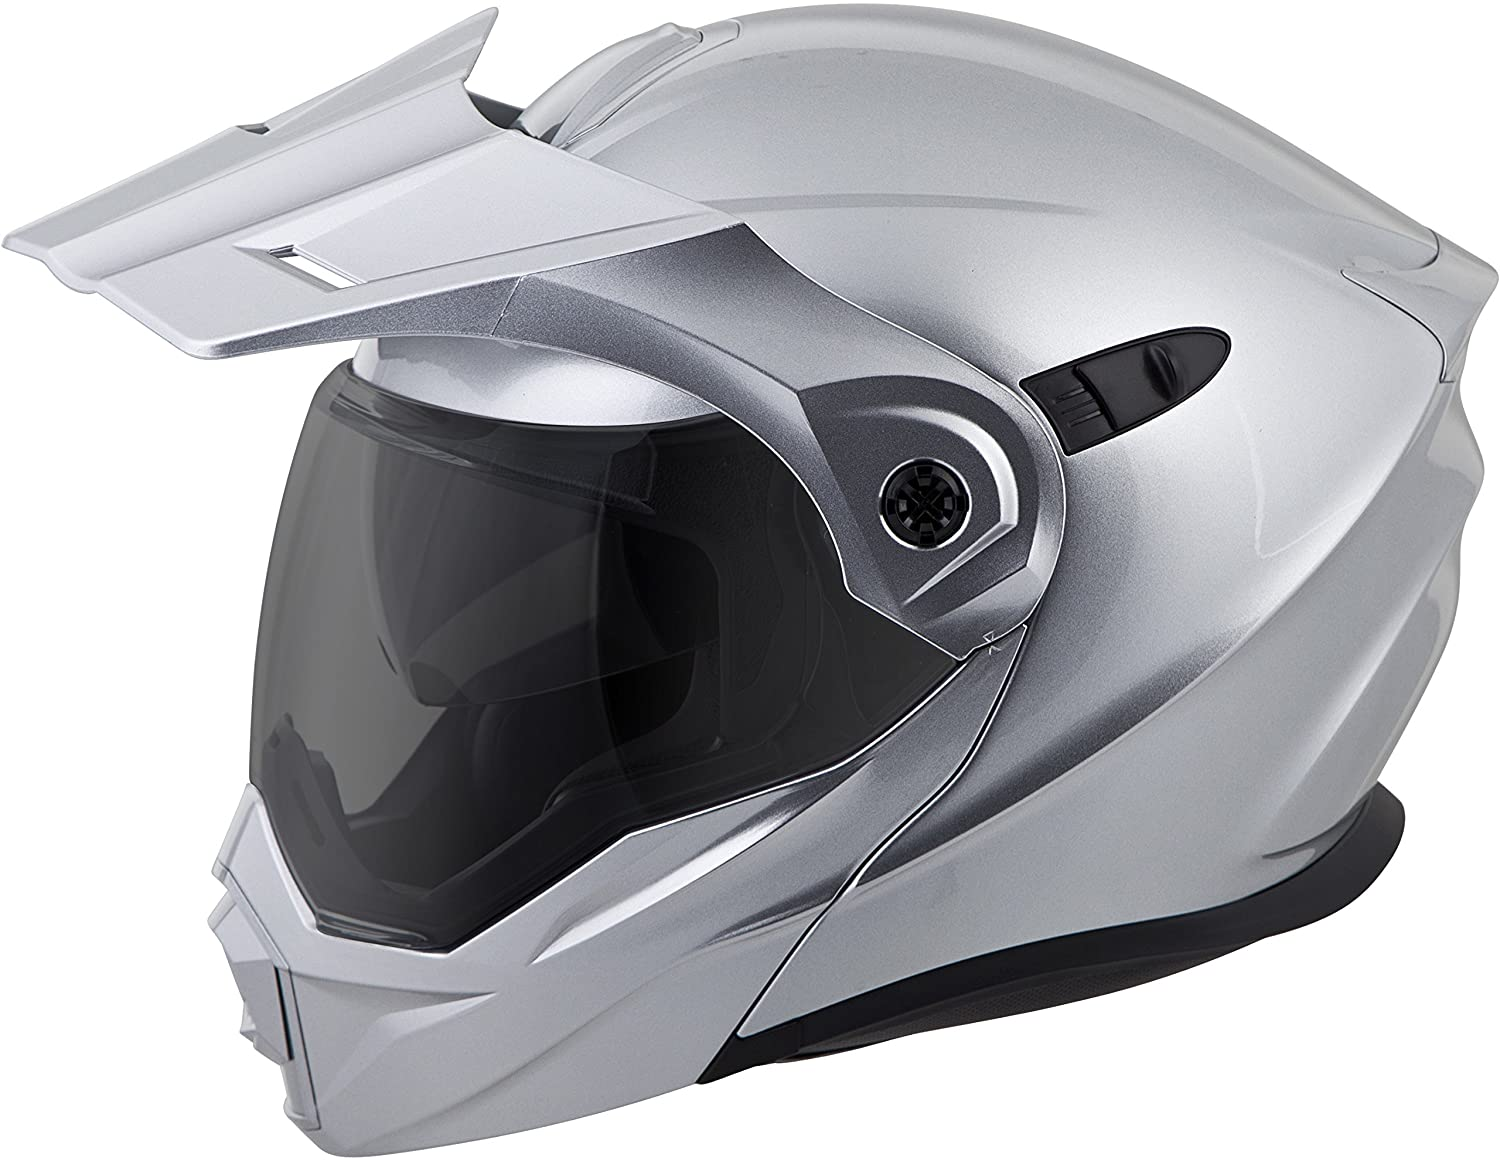 Amazon.com: ScorpionEXO Unisex-Adult Modular/Flip Up Adventure Touring Motorcycle Helmet (Hyper Silver, Large) (EXO-AT950 Solid): Automotive